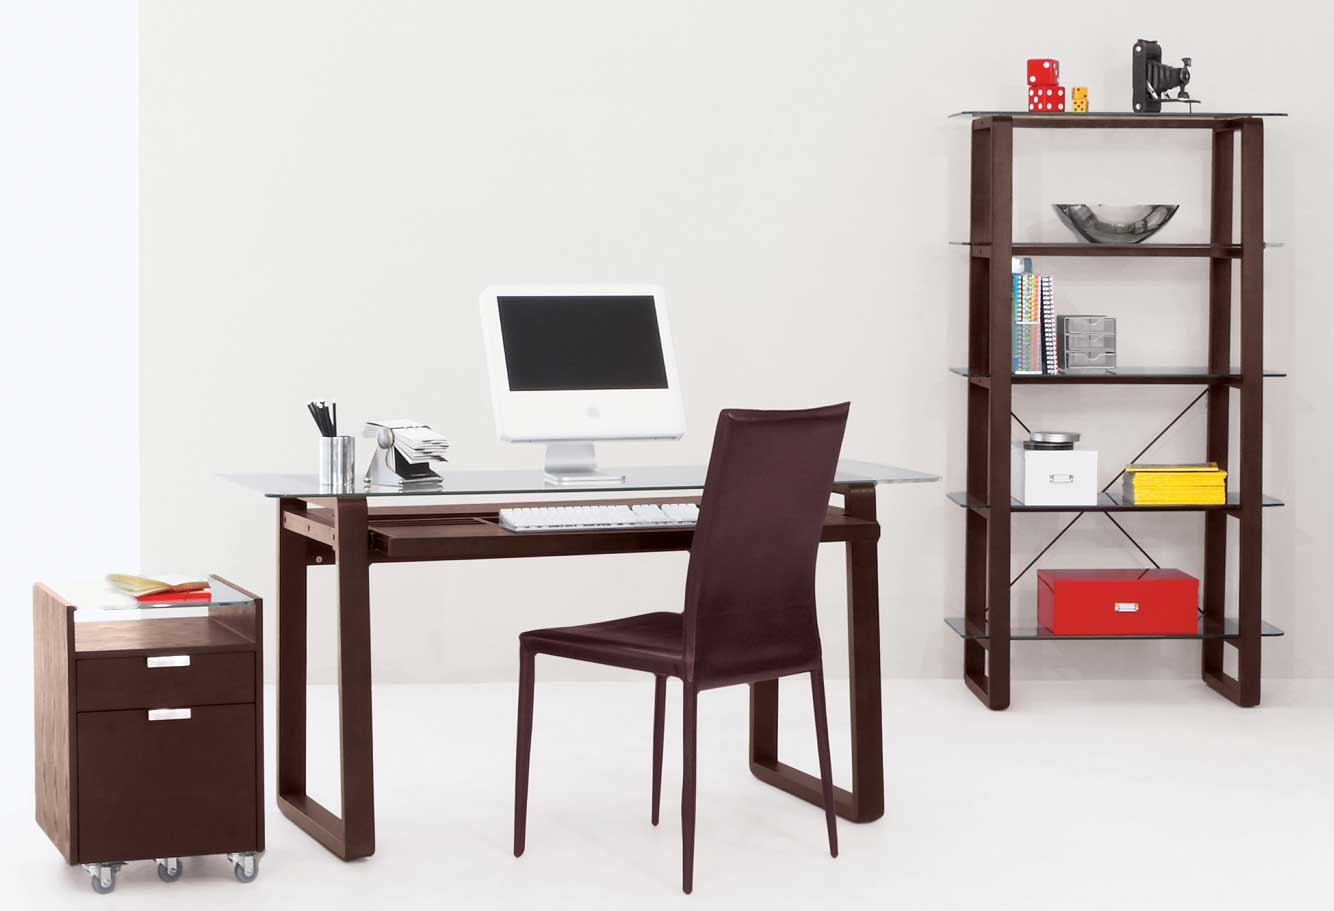 Office furniture collections for office items supplier - Home office desk furniture sets ...